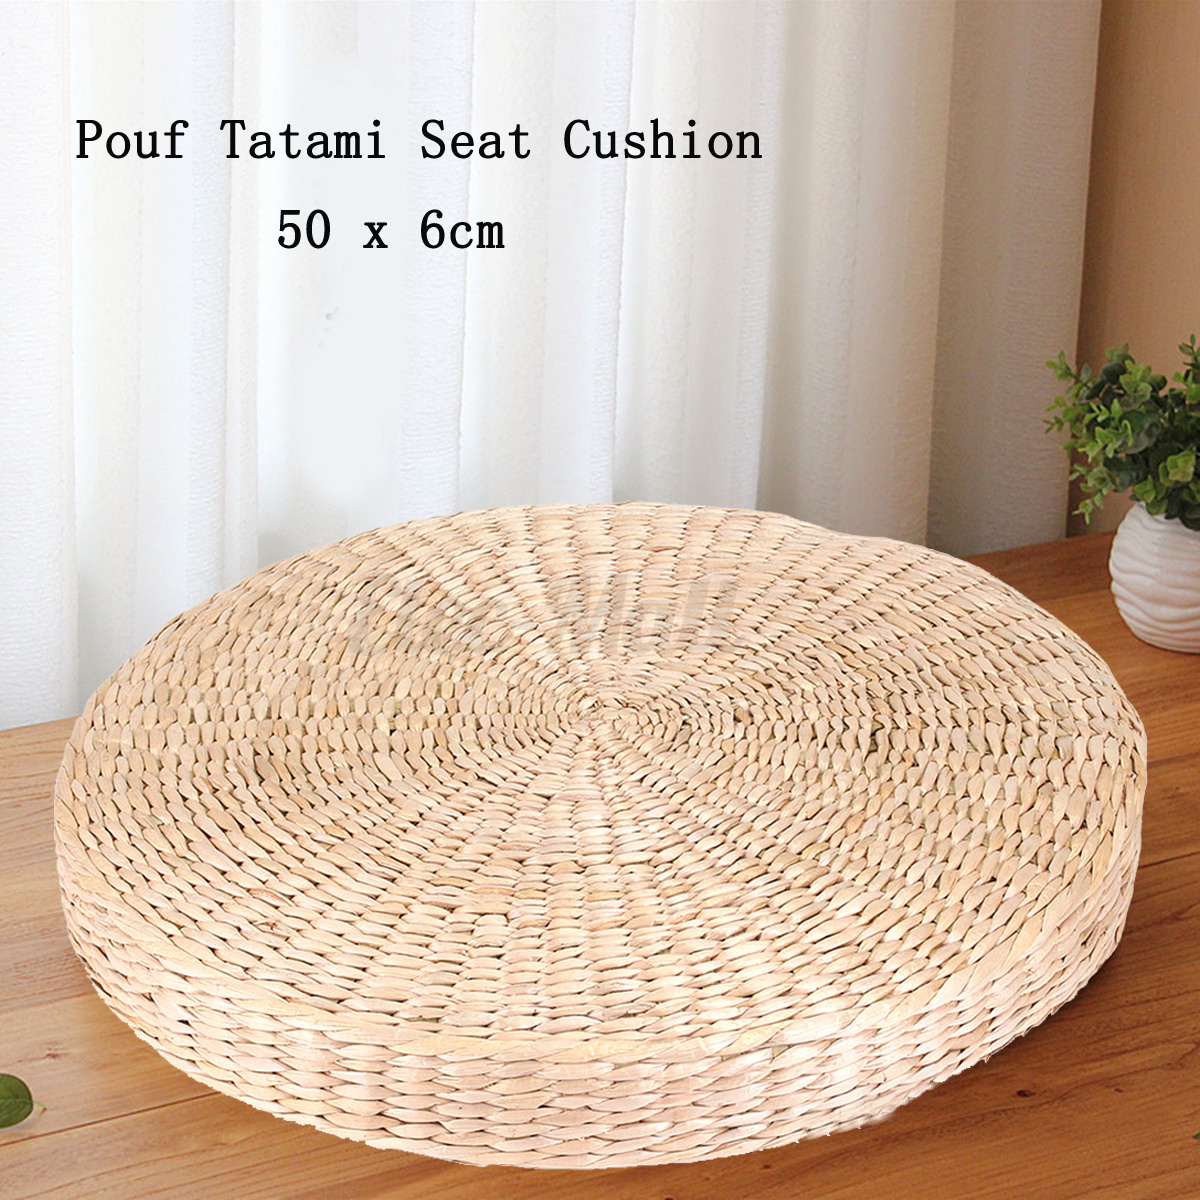 50cm Round Pouf Tatami Cushion Floor Cushions Natural Straw Meditation Yoga Mat eBay